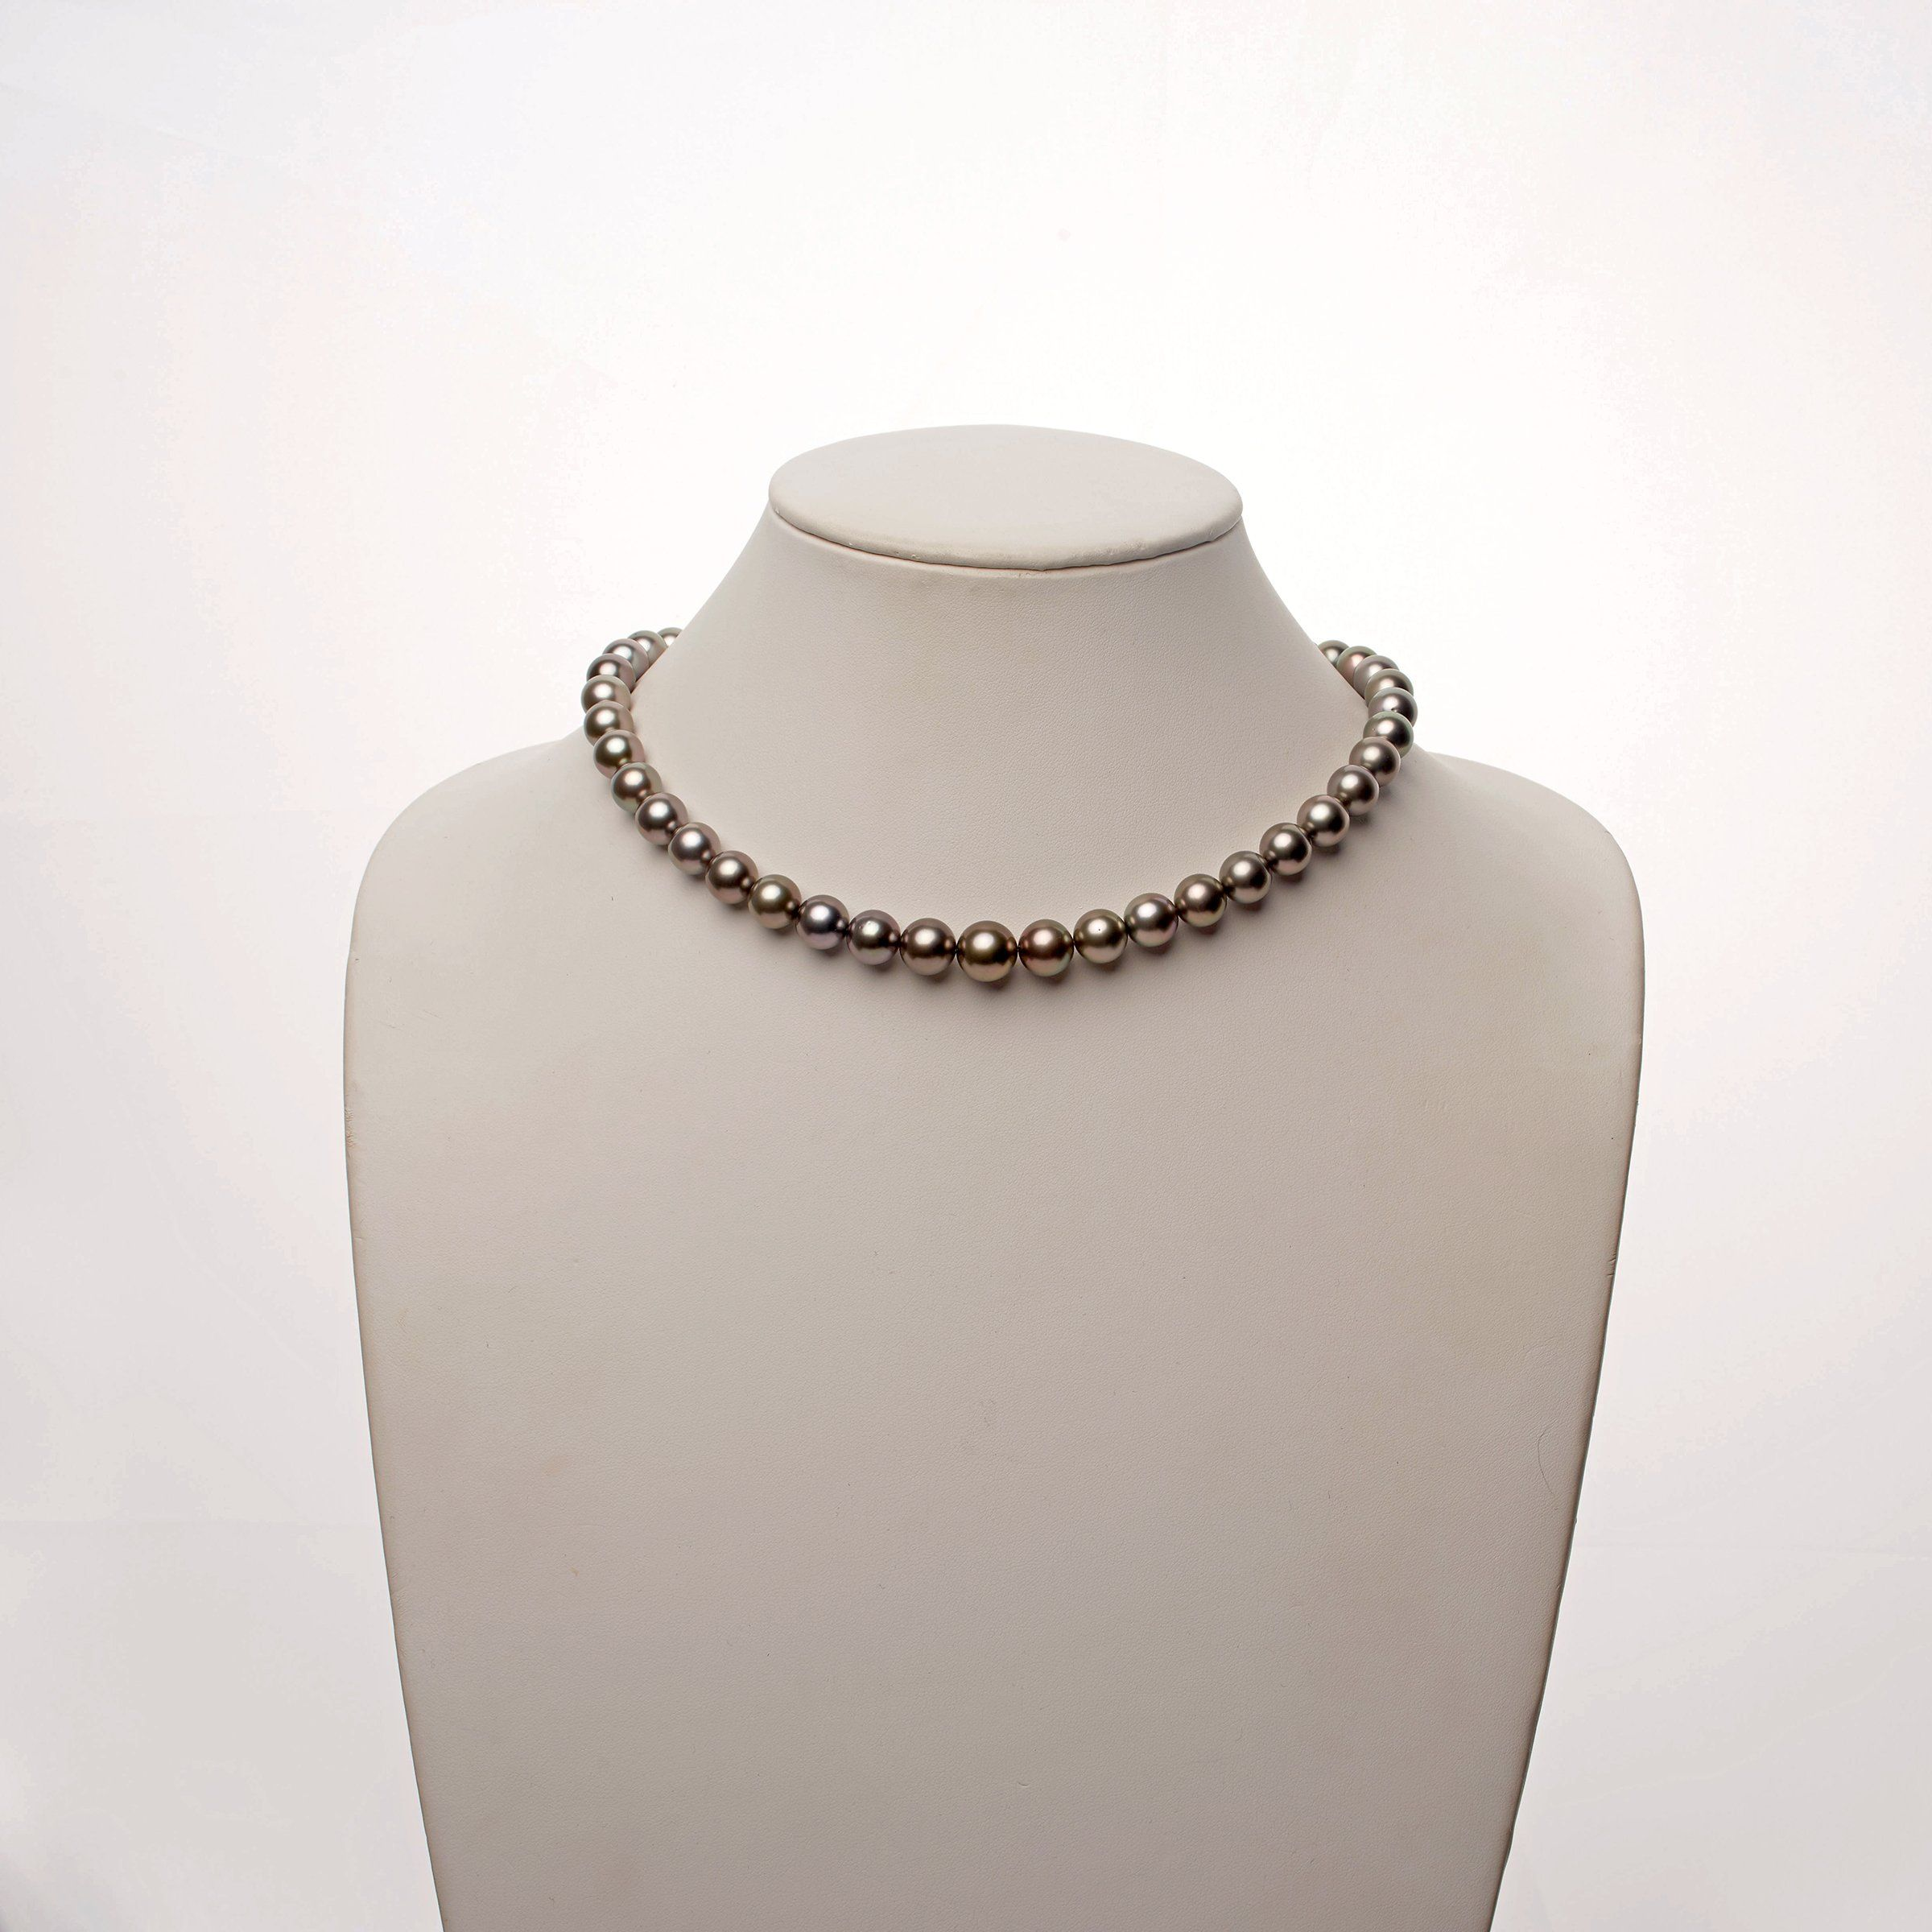 9.0-10.9 mm AAA Tahitian Round Pearl Necklace